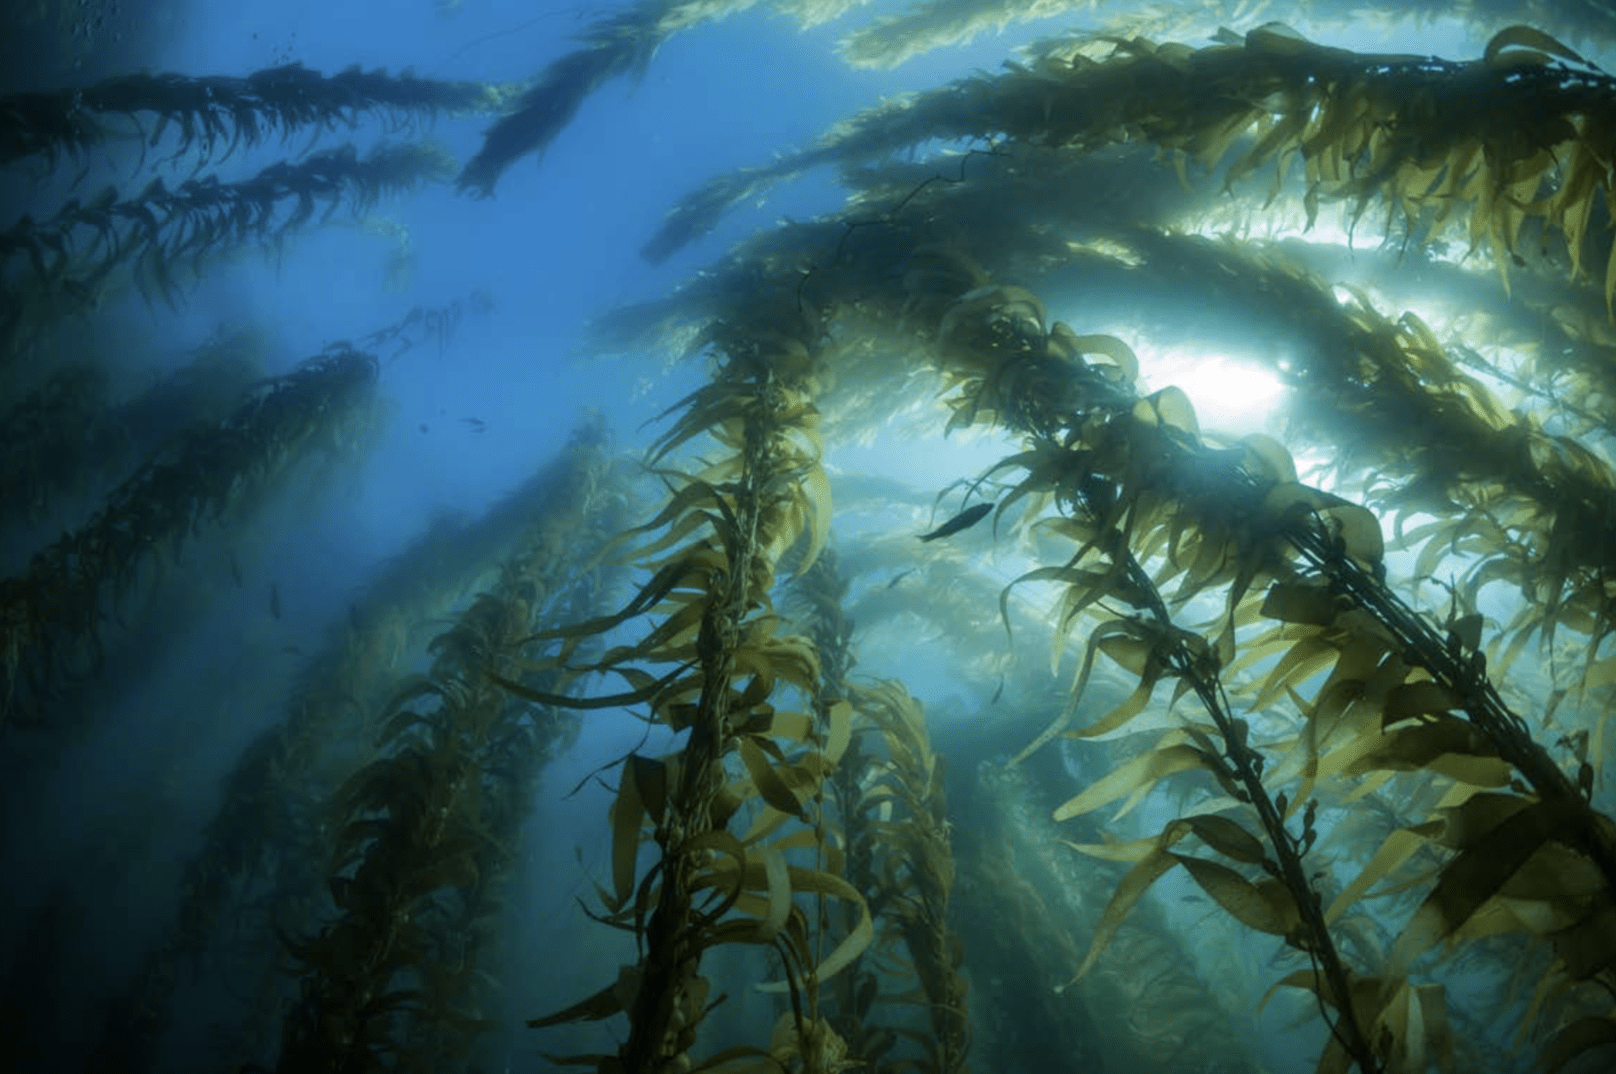 Underwater forest with seaweed from Our Planet